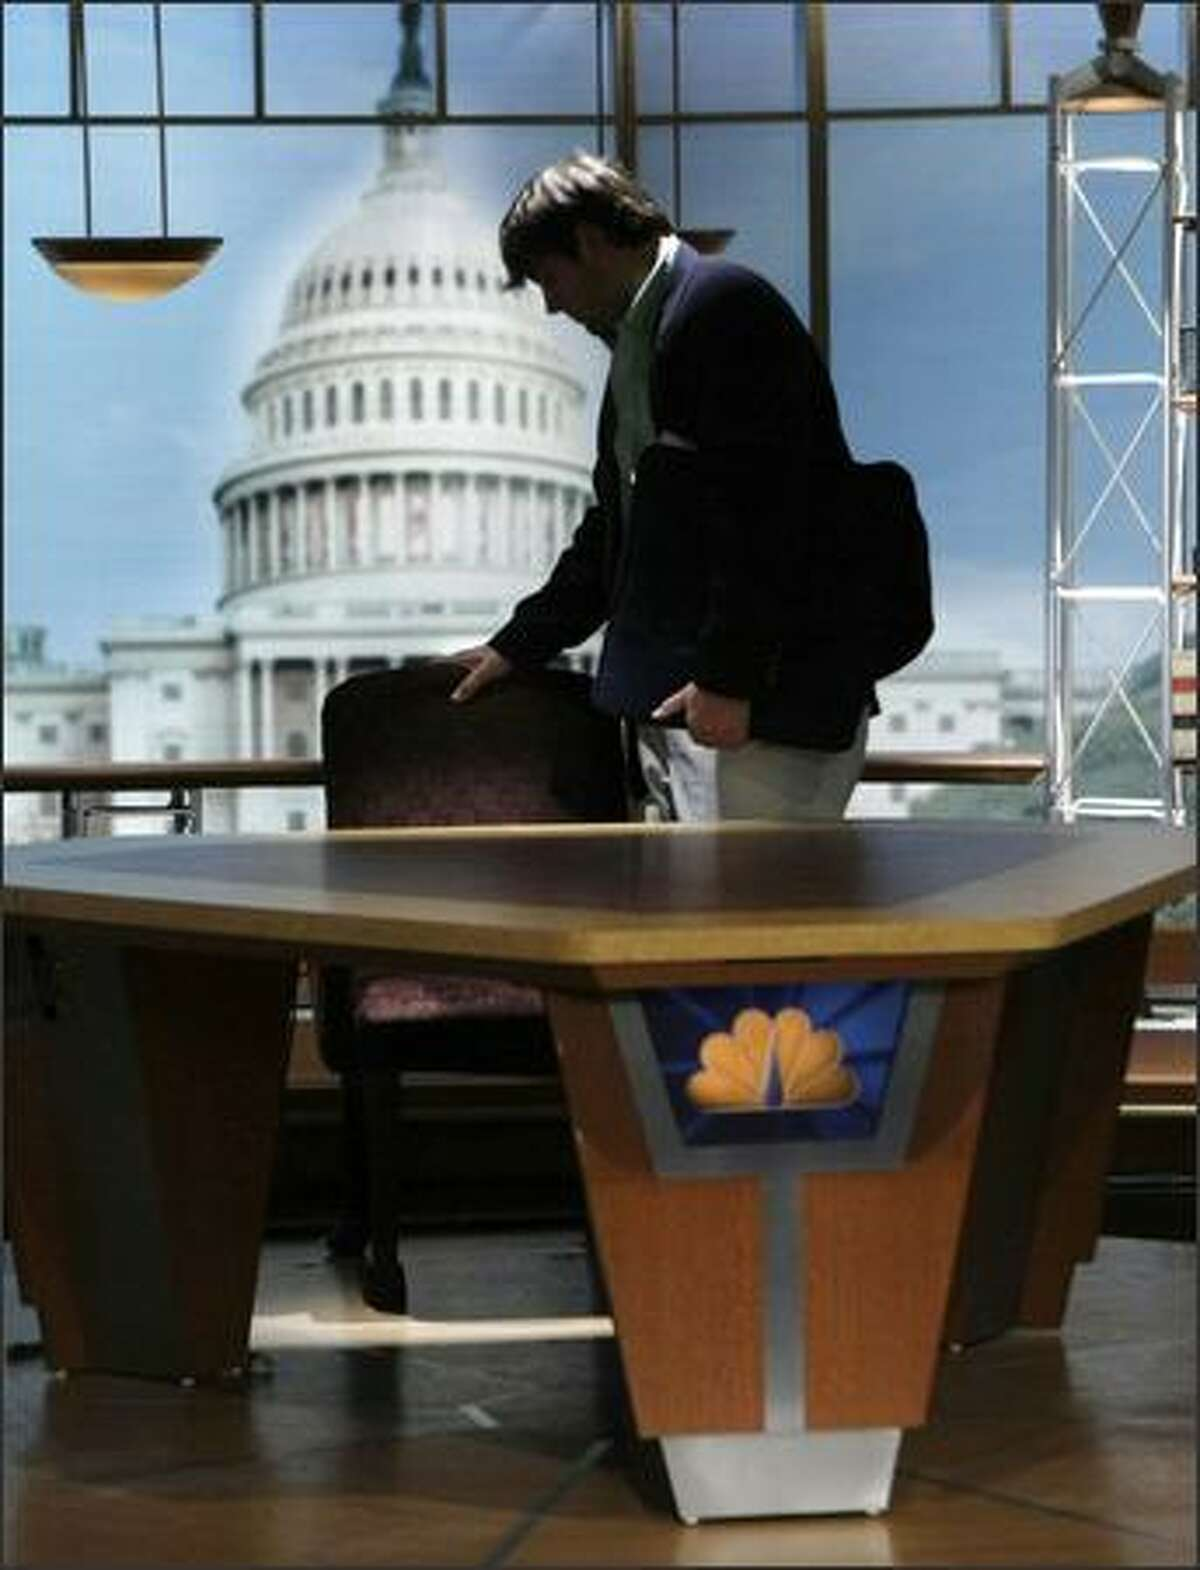 Luke Russert, son of Tim Russert, touches the empty chair that was his father's on the set of